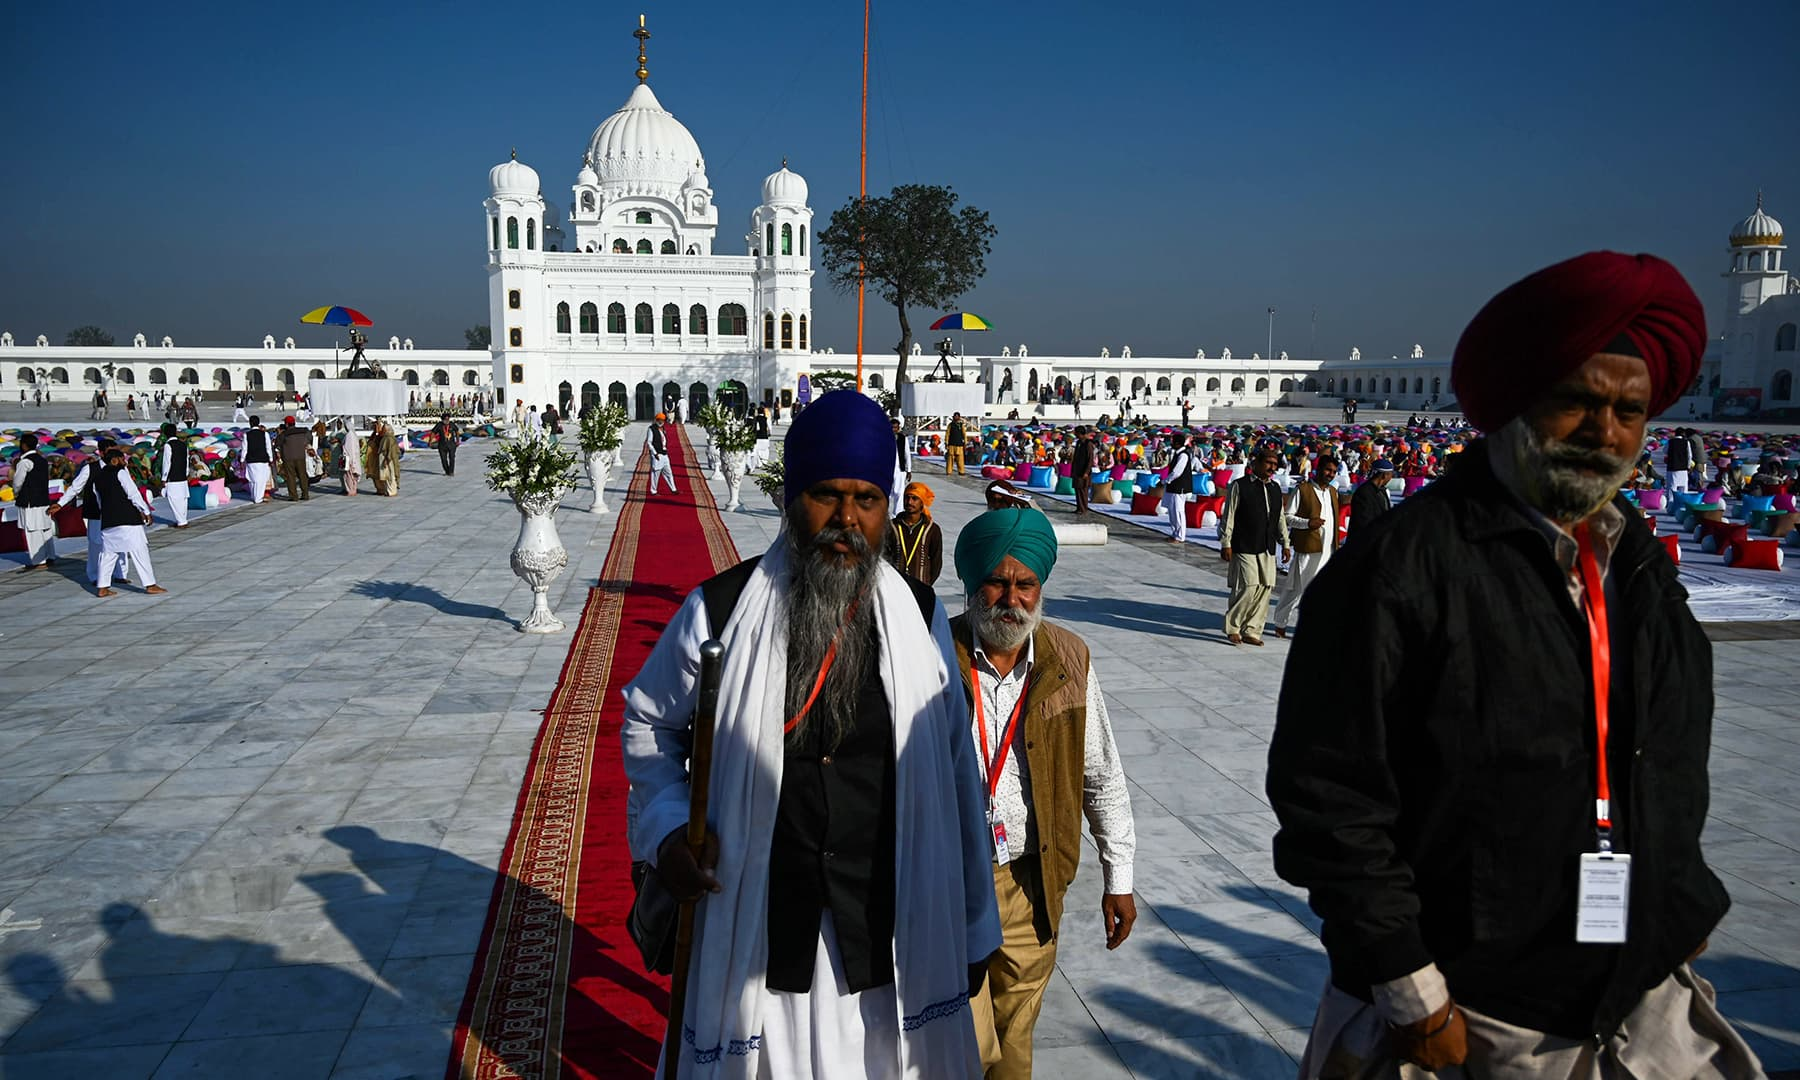 Sikh pilgrims arrive to visit the Shrine of Baba Guru Nanak Dev at Gurdwara Darbar Sahib in Kartarpur on Saturday. — AFP